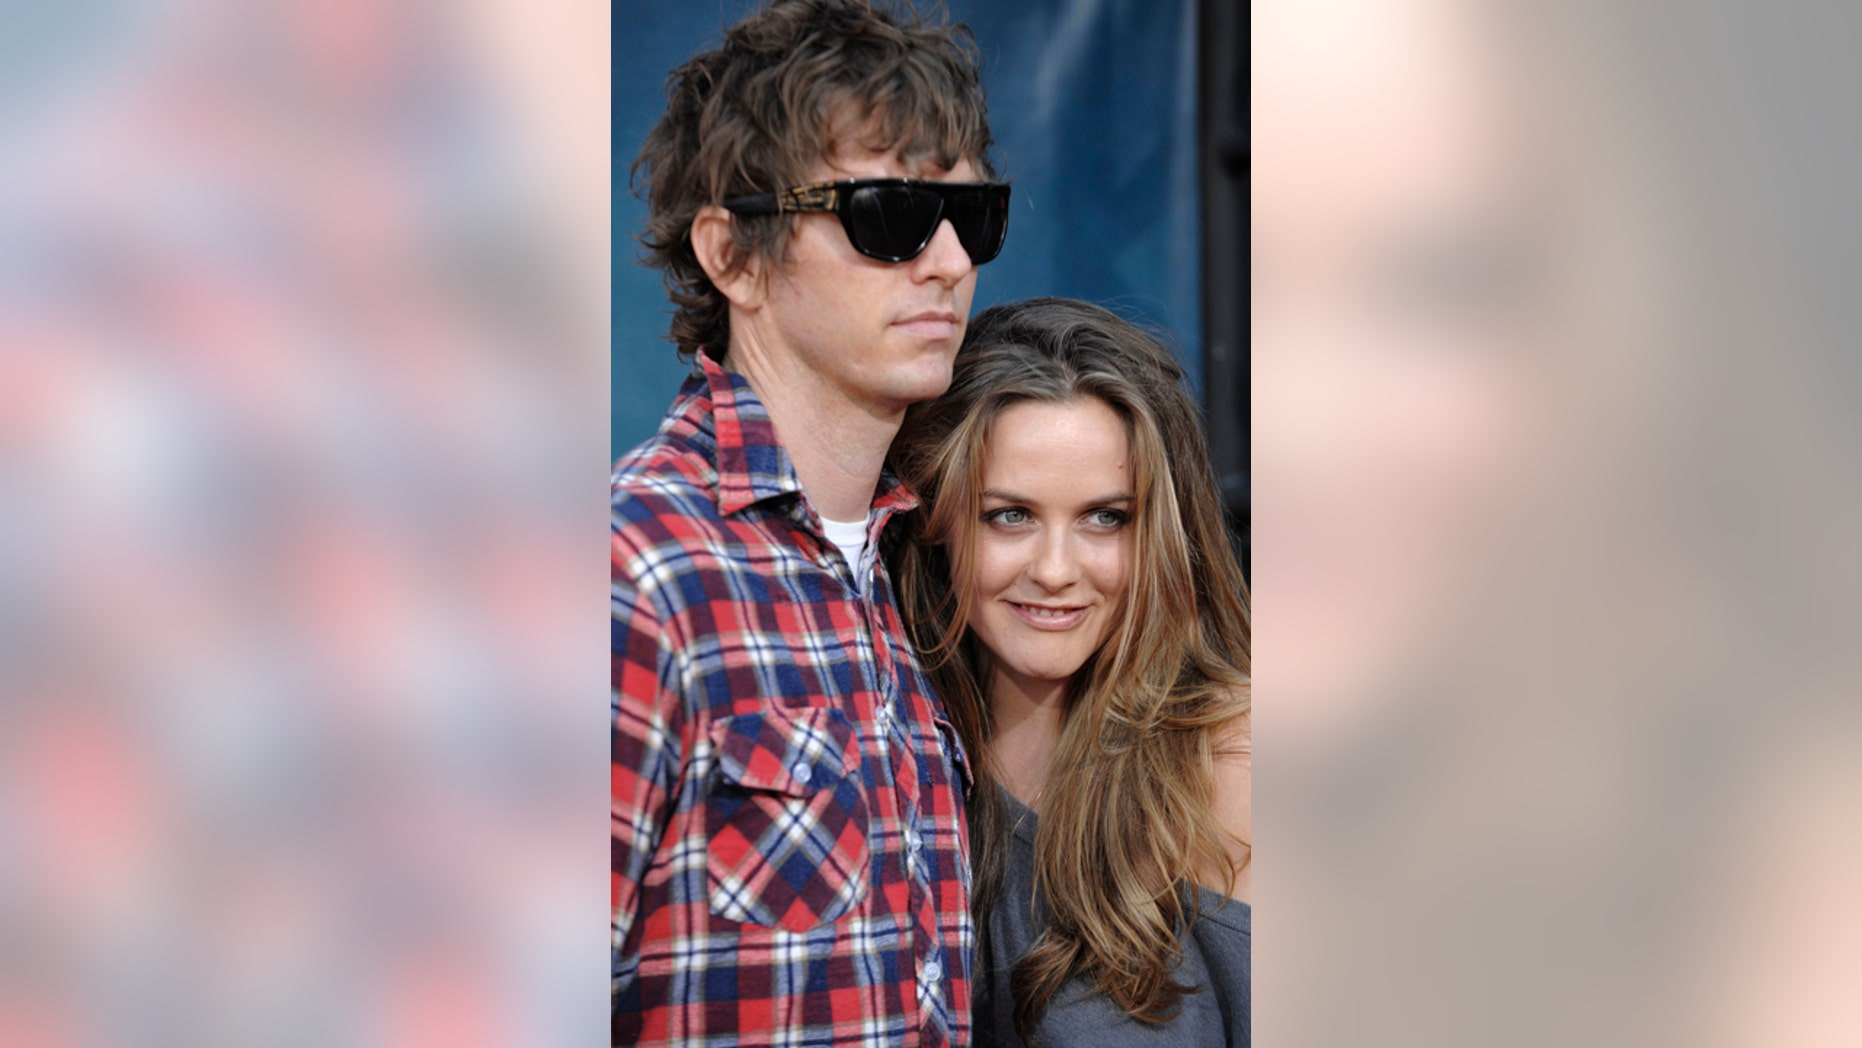 """FILE - In this Thursday July 31, 2008 file photo, Christopher Jarecki and Alicia Silverstone arrive at the premiere of """"Pineapple Express"""" in Mann Village Theater in Los Angeles. Alicia Silverstone is divorcing her husband of nearly 13 years. The """"Clueless"""" actress filed for divorce from Christopher Jarecki on Friday, May 25, 2018 in Los Angeles County Superior Court"""